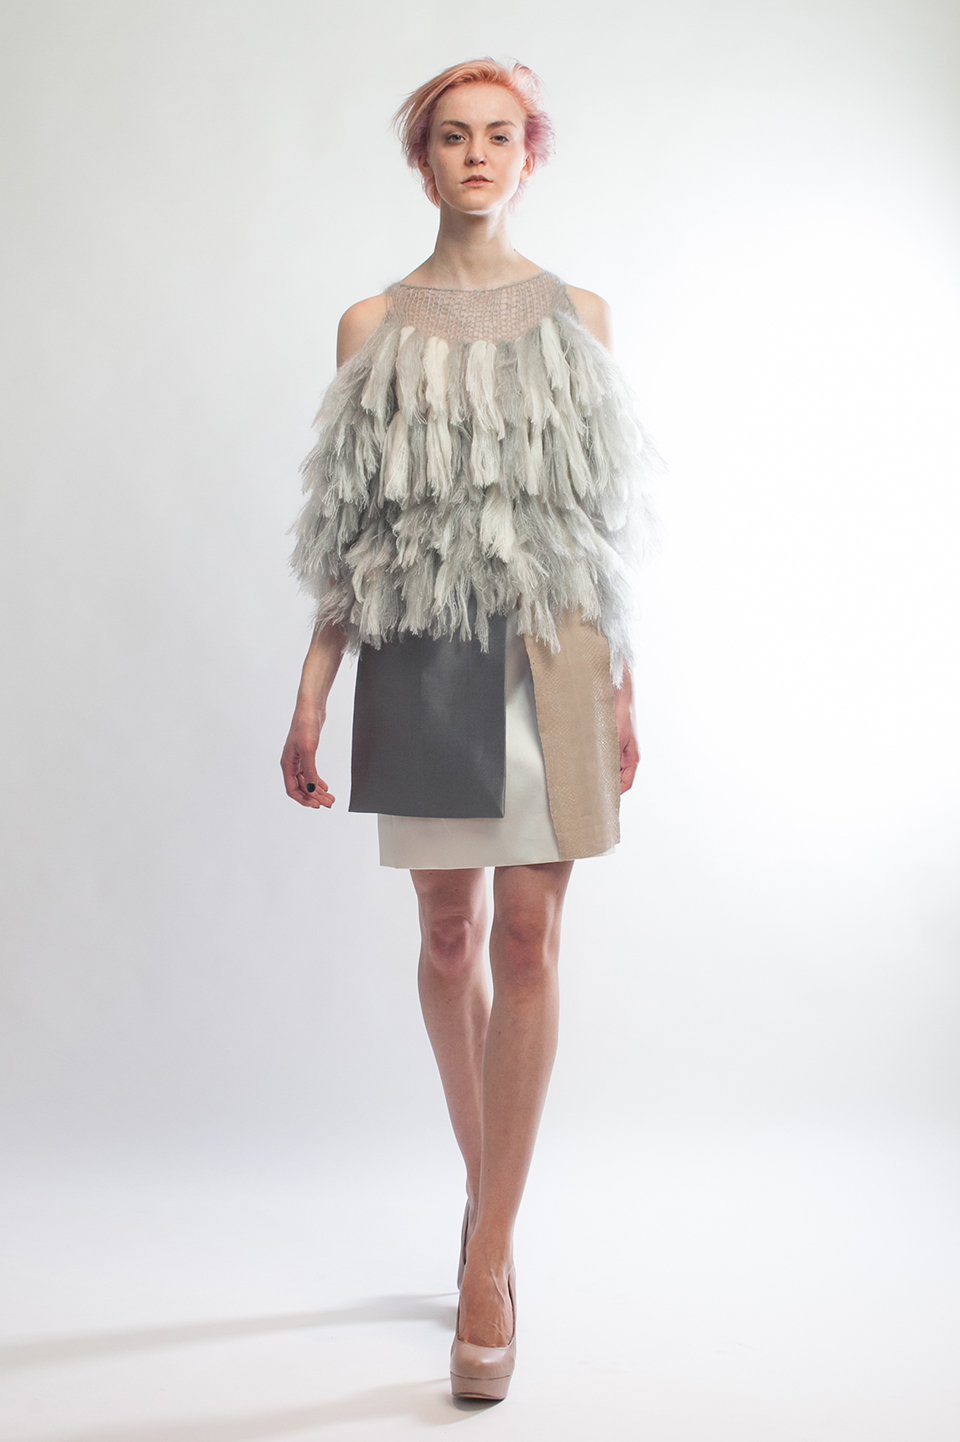 Claire Andrew Designer Fashion AW14 6 - Couture fringed knit cold shoulder knit with layered skirt